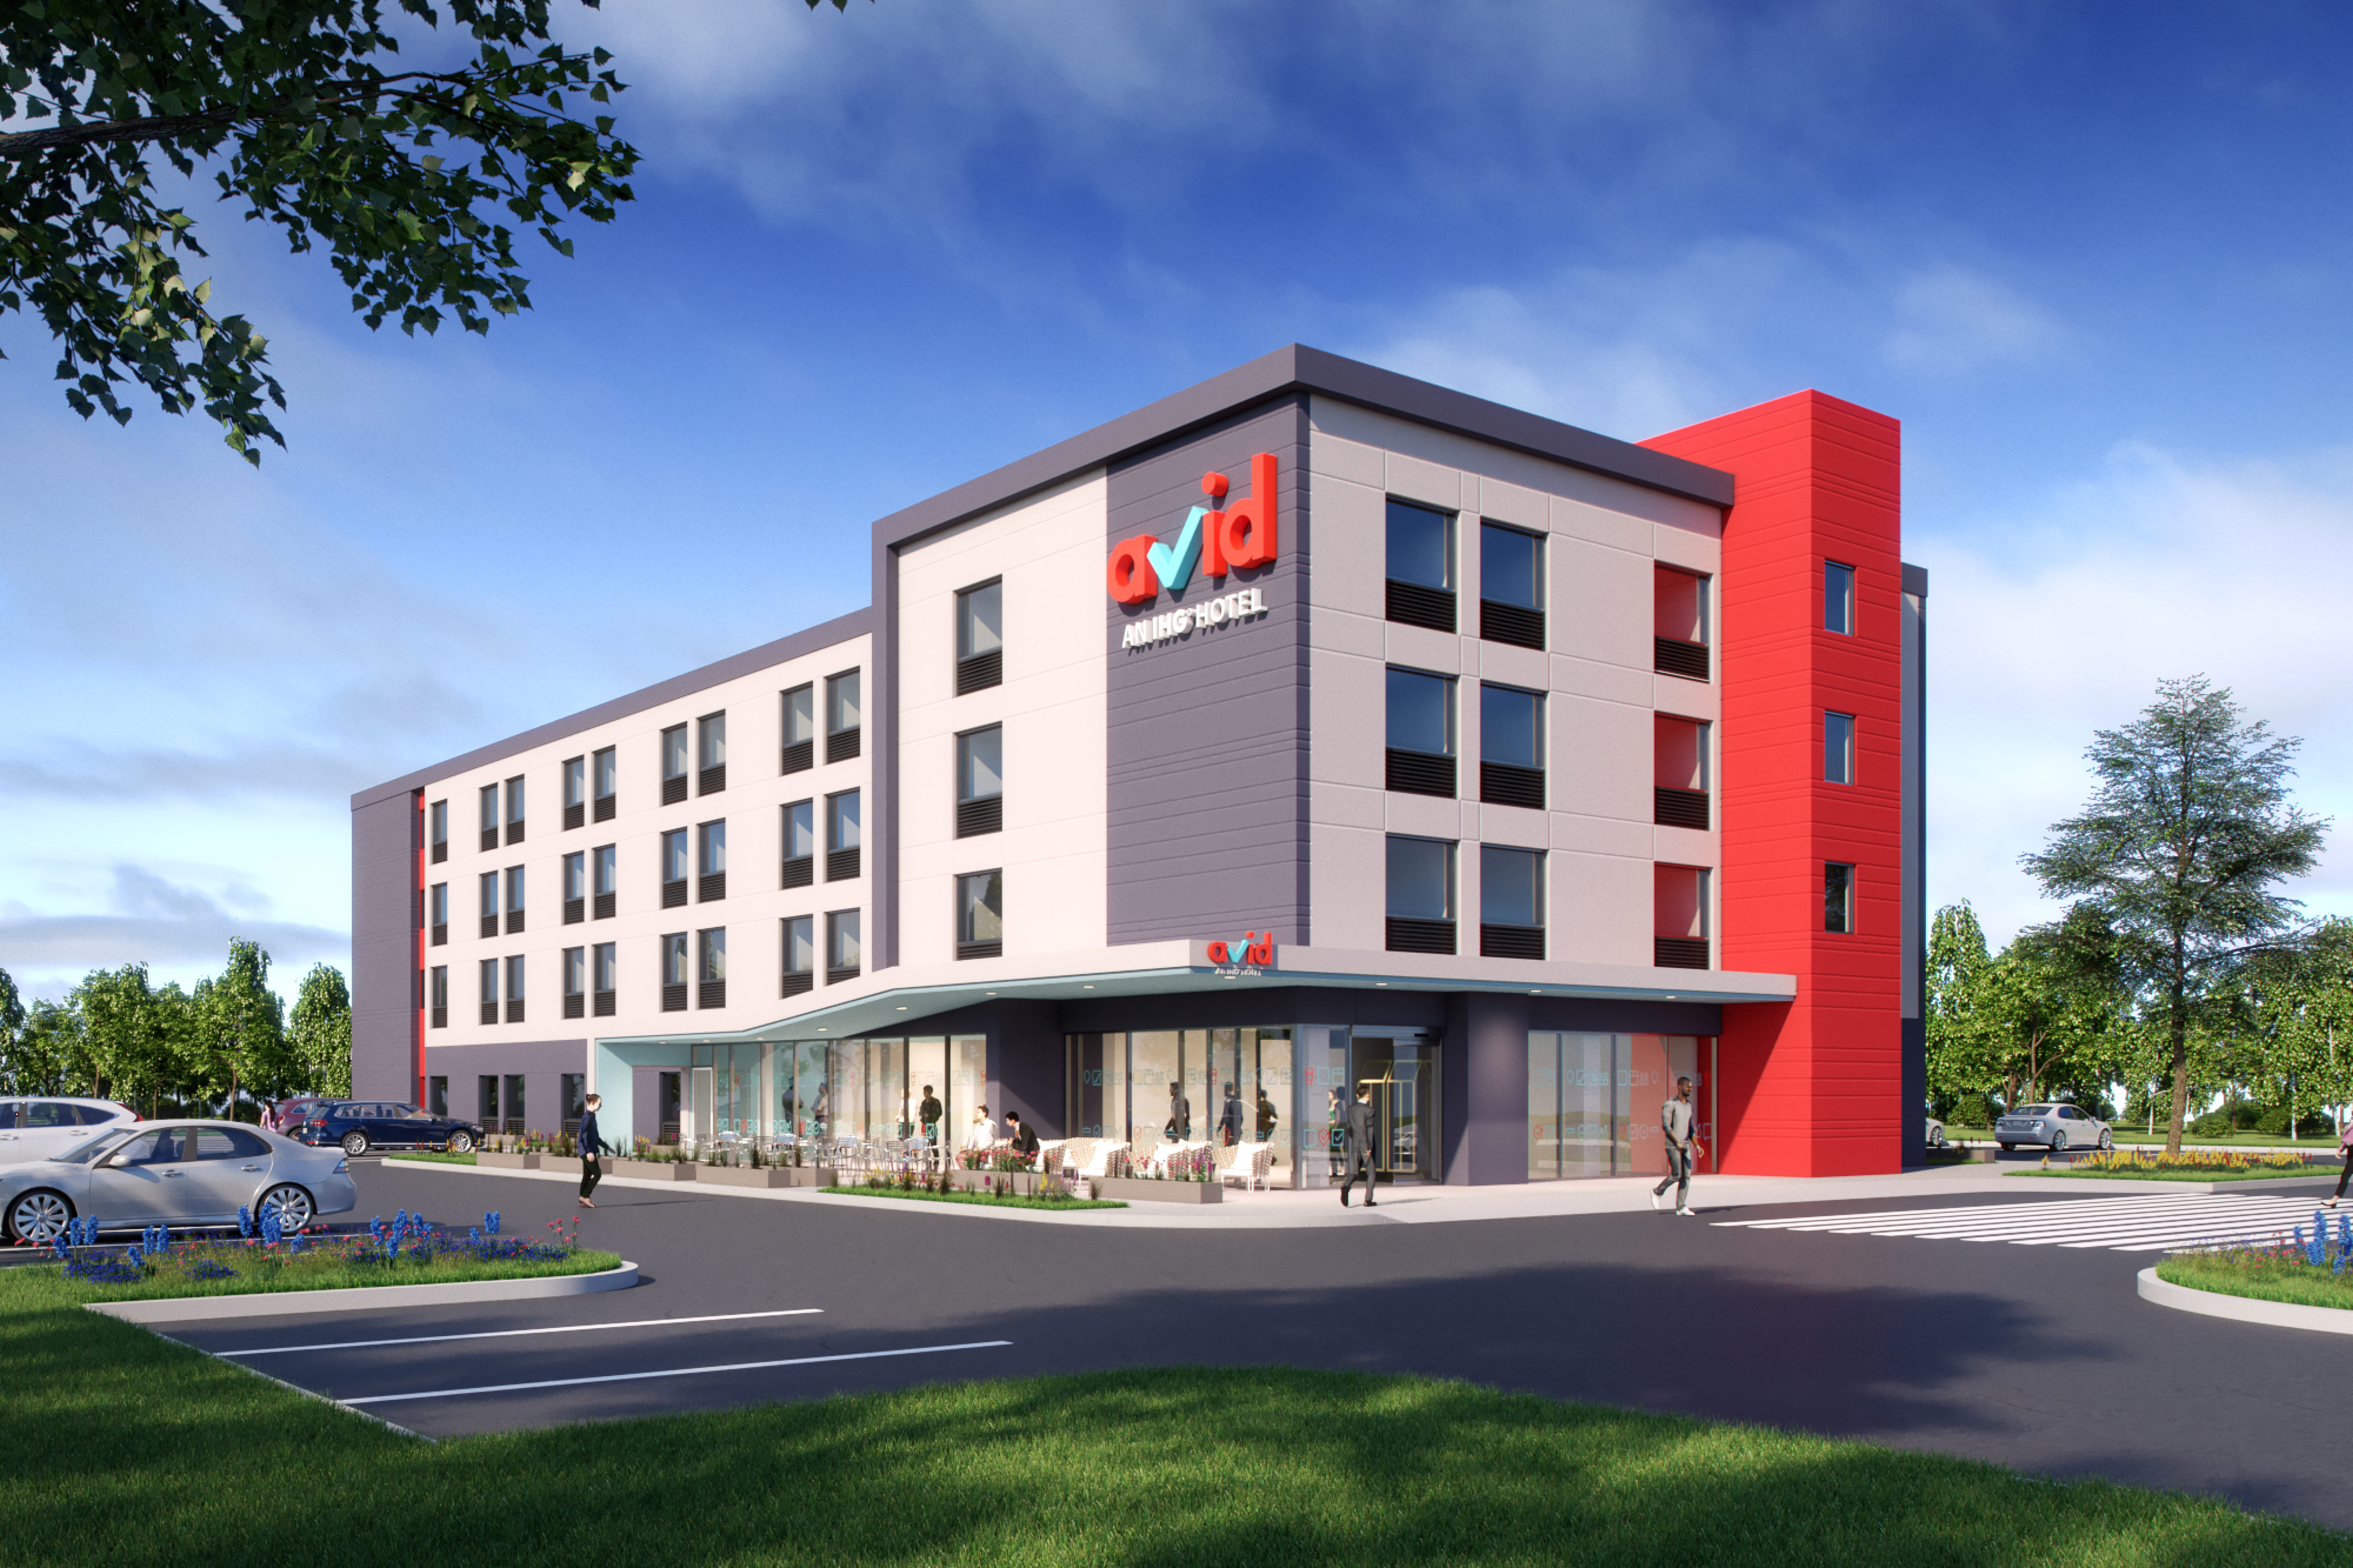 A render of the exterior of the avid Oklahoma City property, the first avid hotel. It's very modern, with red accents on the outside and a large red avid logo on the front.